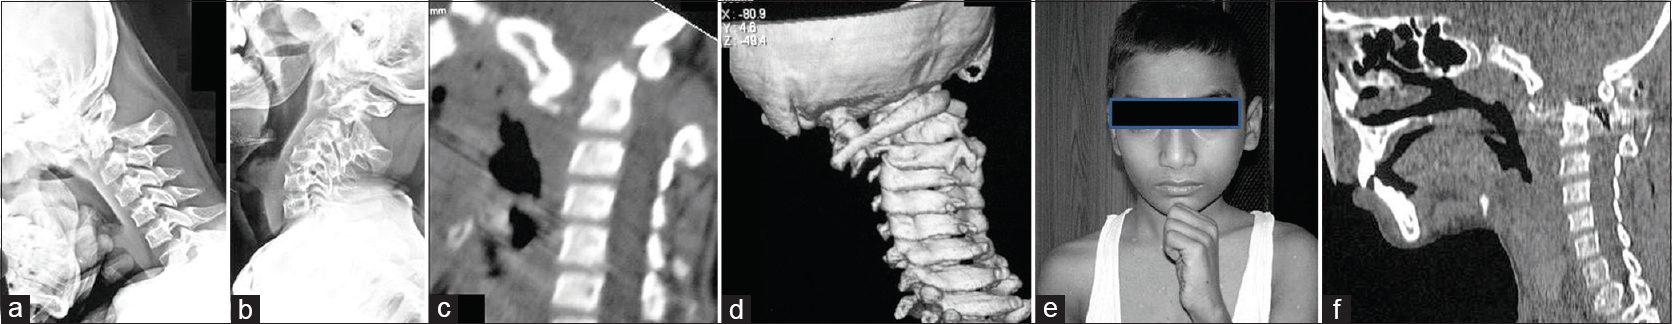 Figure 5: Images of a 12-year-old boy. (a) Lateral radiograph with the head in flexion showing translatory dislocation. The C1 vertebra is dislocated anteriorly. (b) Lateral radiograph with the head in extension showing no reduction of the dislocation. (c) Sagittal computed tomography scan showing the atlantoaxial dislocation. (d) Three-dimensional computed tomography reconstruction revealing the translatory dislocation of C1 over C2. (e) Photograph of the boy holding his head with thumb over the chin to look ahead. (f) Postoperative computed tomography scan showing reduction of the dislocation